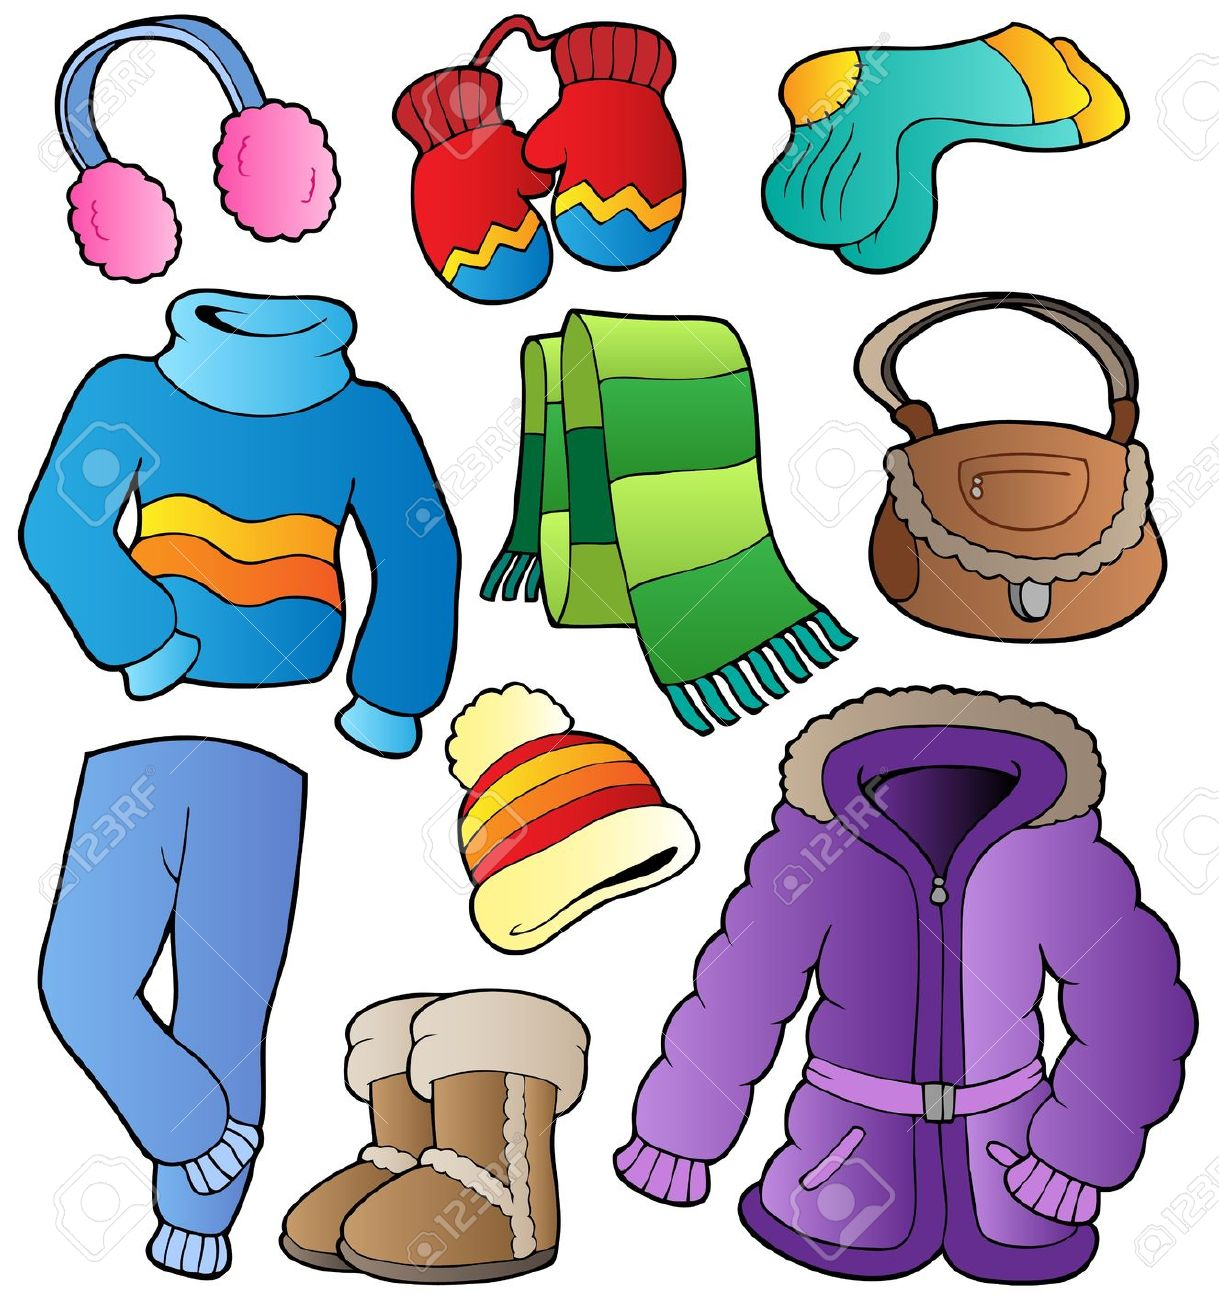 Kids winter clothes clipart.